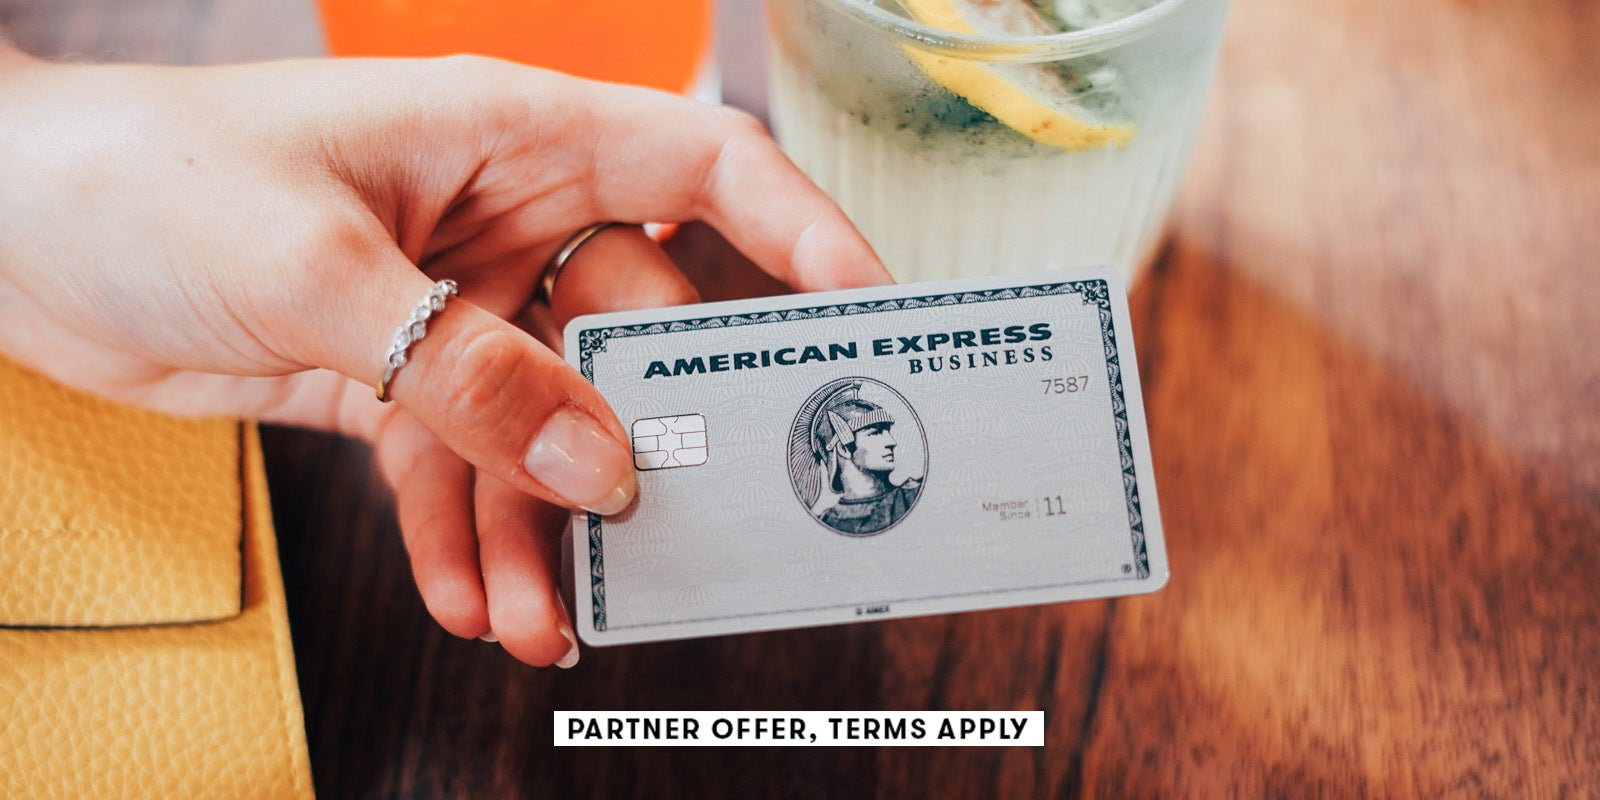 Some Amex Platinum cardholders are about to get double the value out of their cards